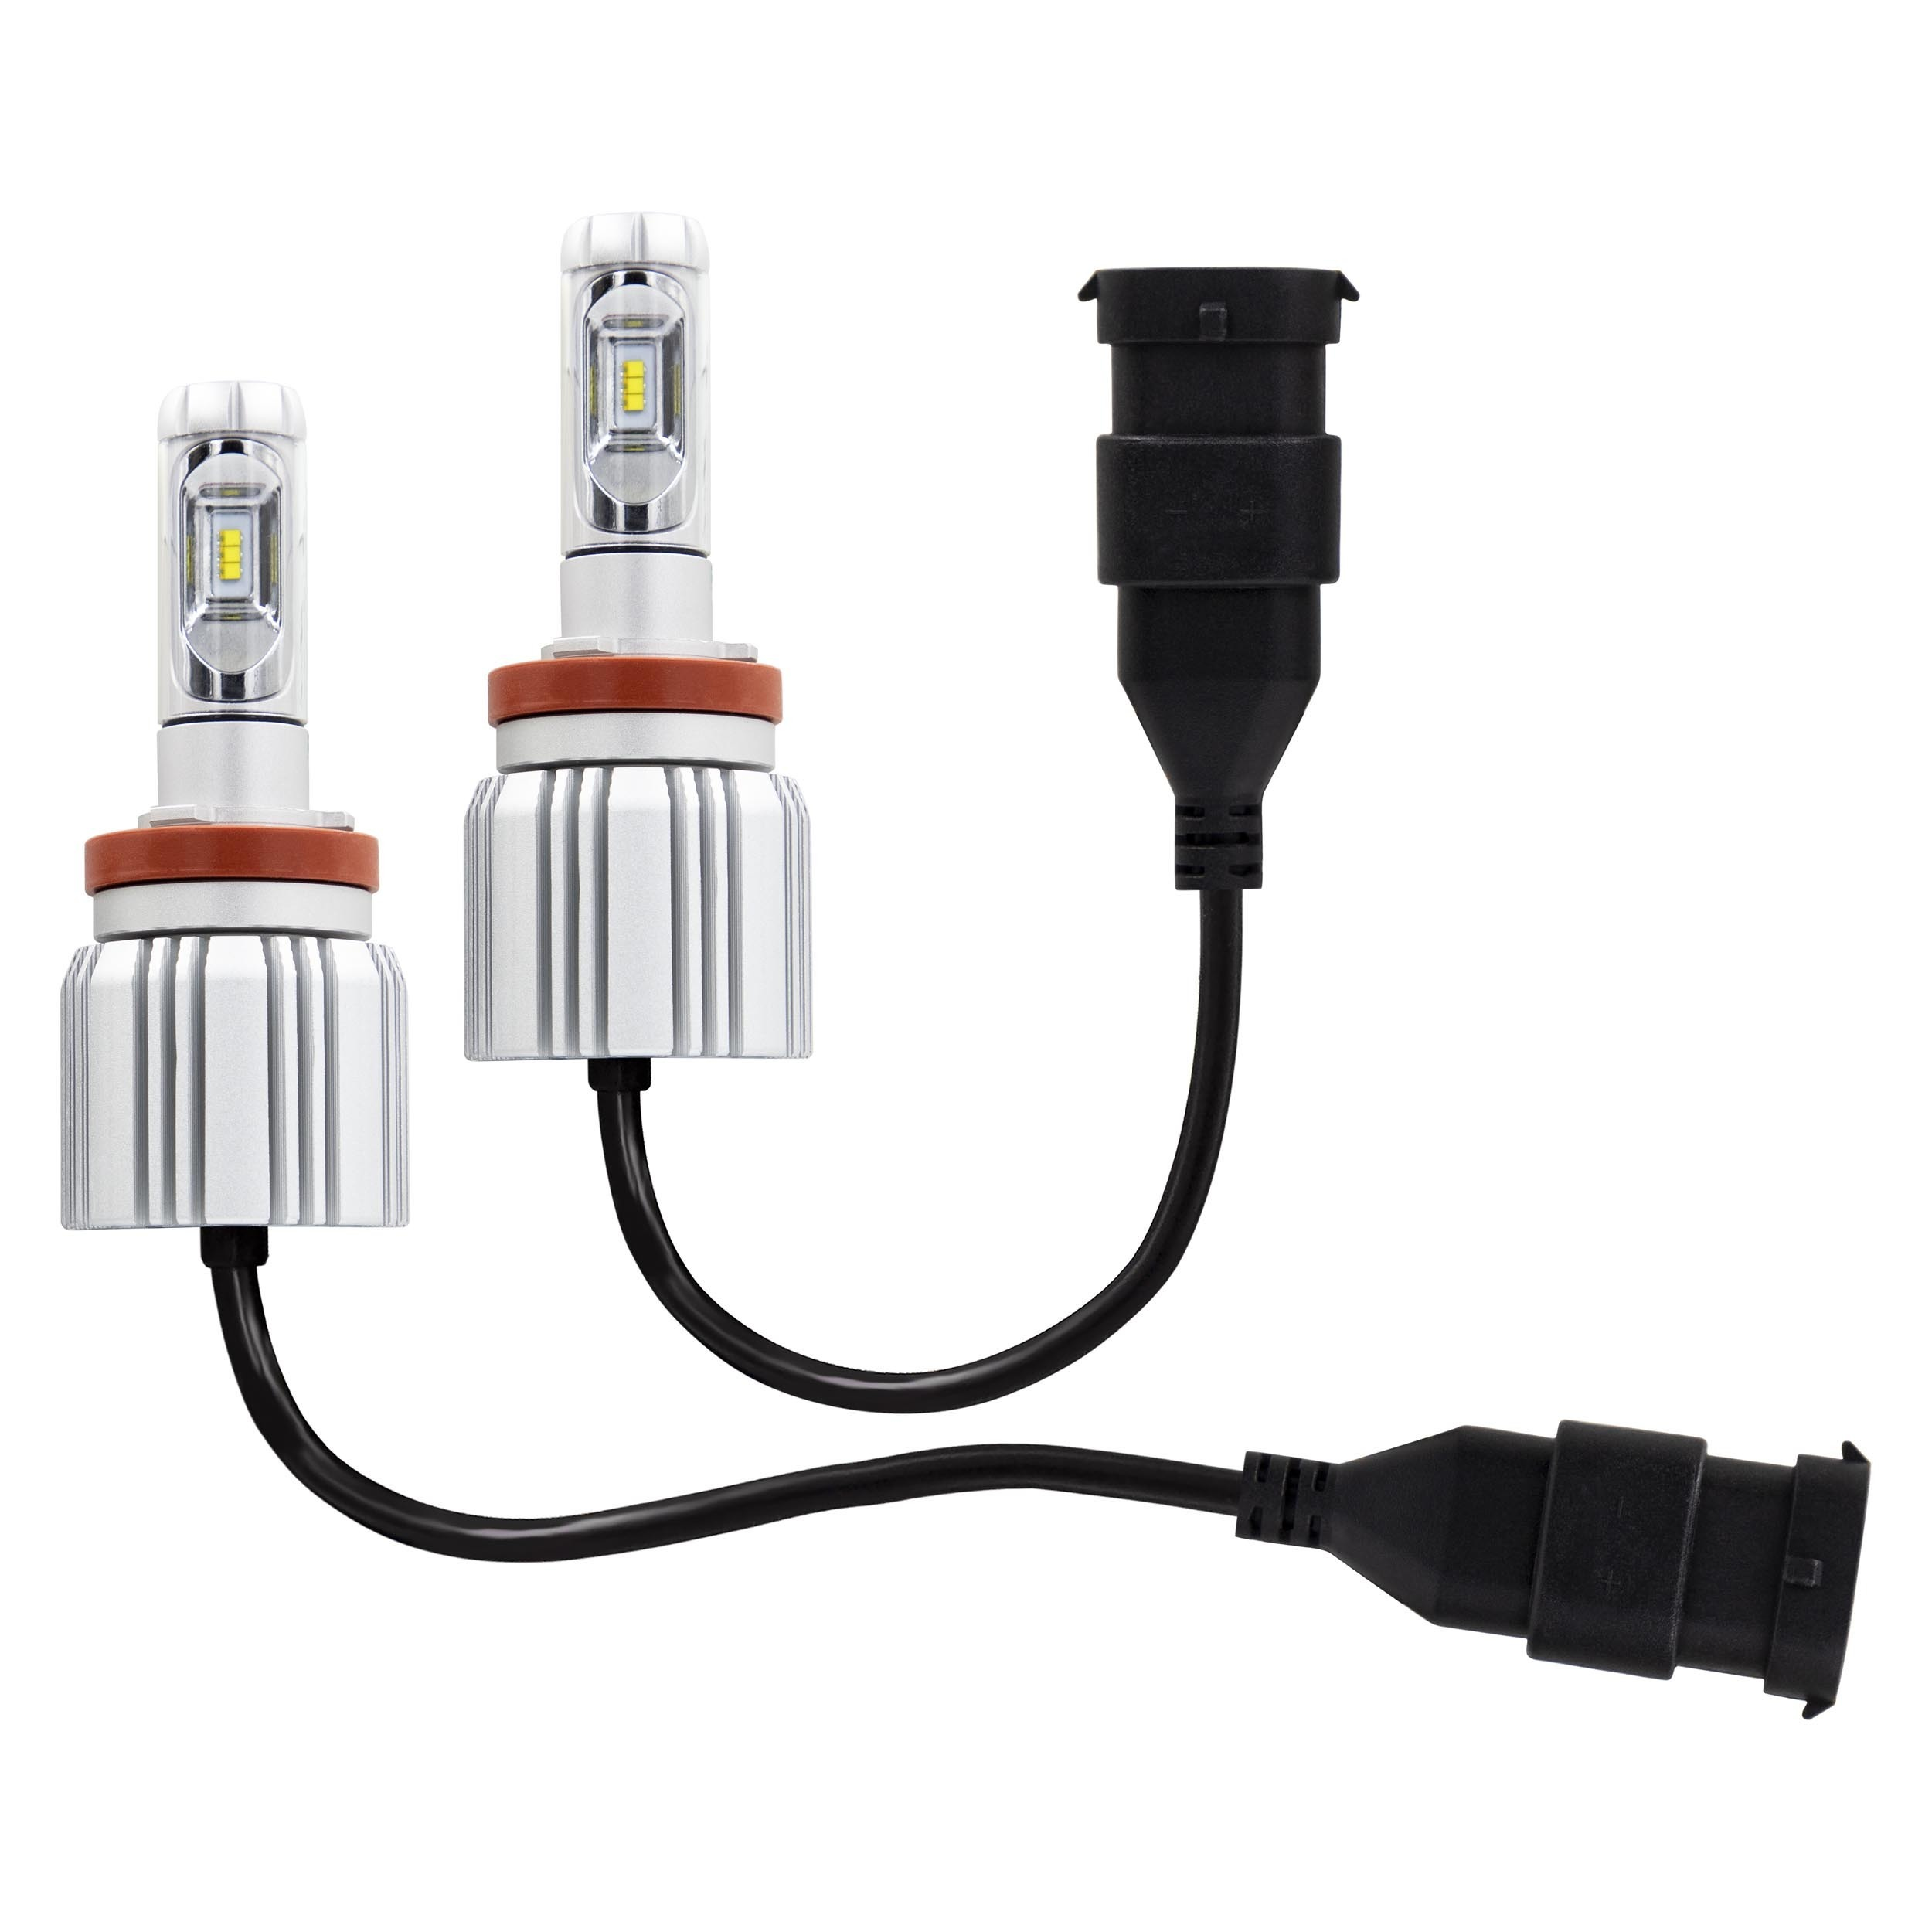 H8 Replacement LED Headlight Kit - Single Beam, Pair